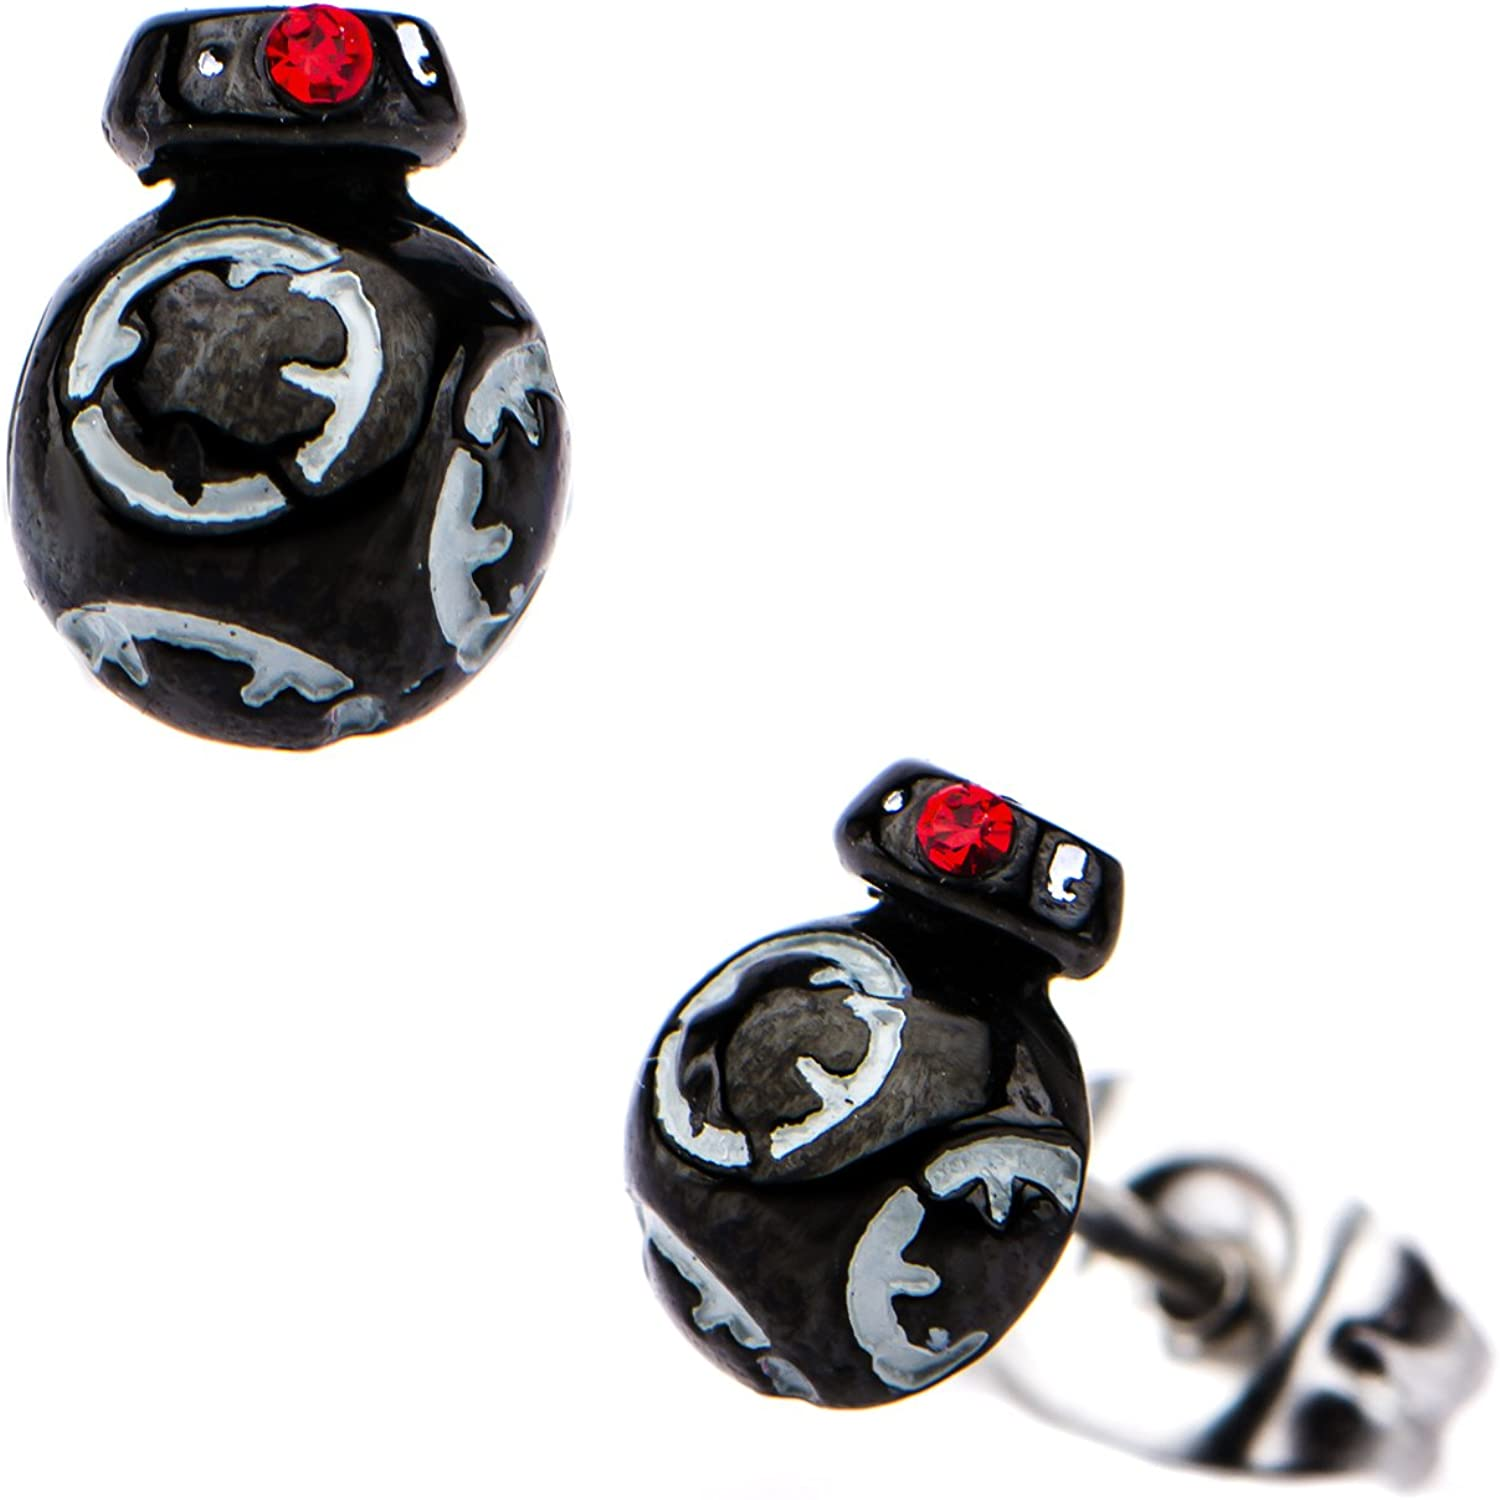 C-3PO and R2-D2 316L Stainless Steel /& Base Metal Droid Stud Earrings Set Star Wars BB-8